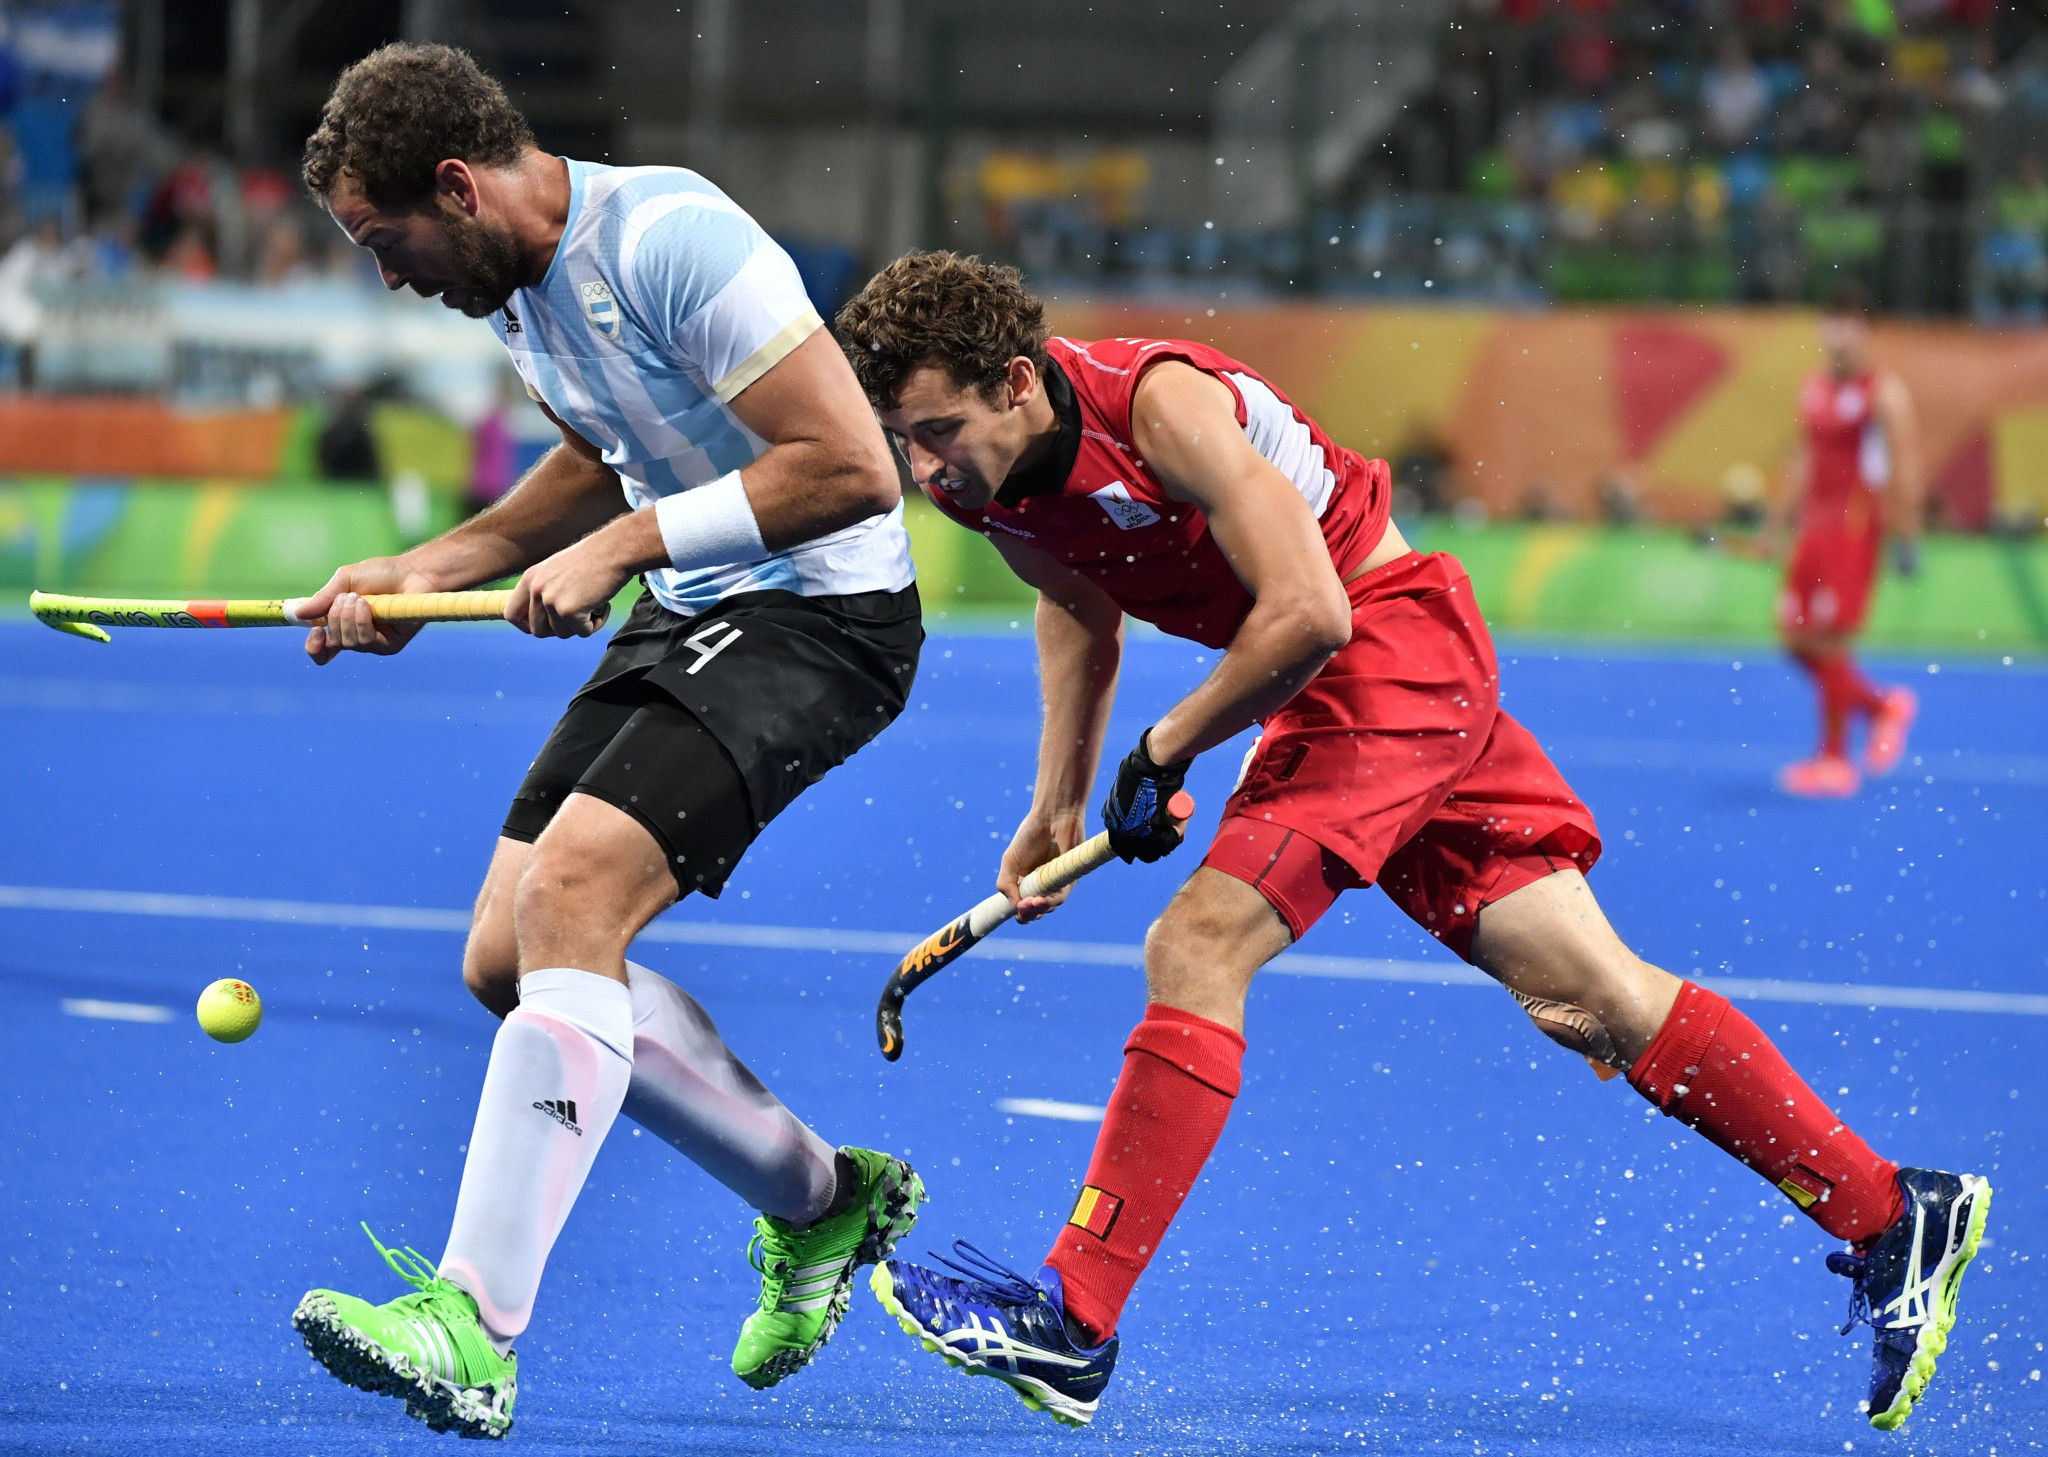 Rio 2016 rematch to headline group stages at Men's Hockey World League Final in India